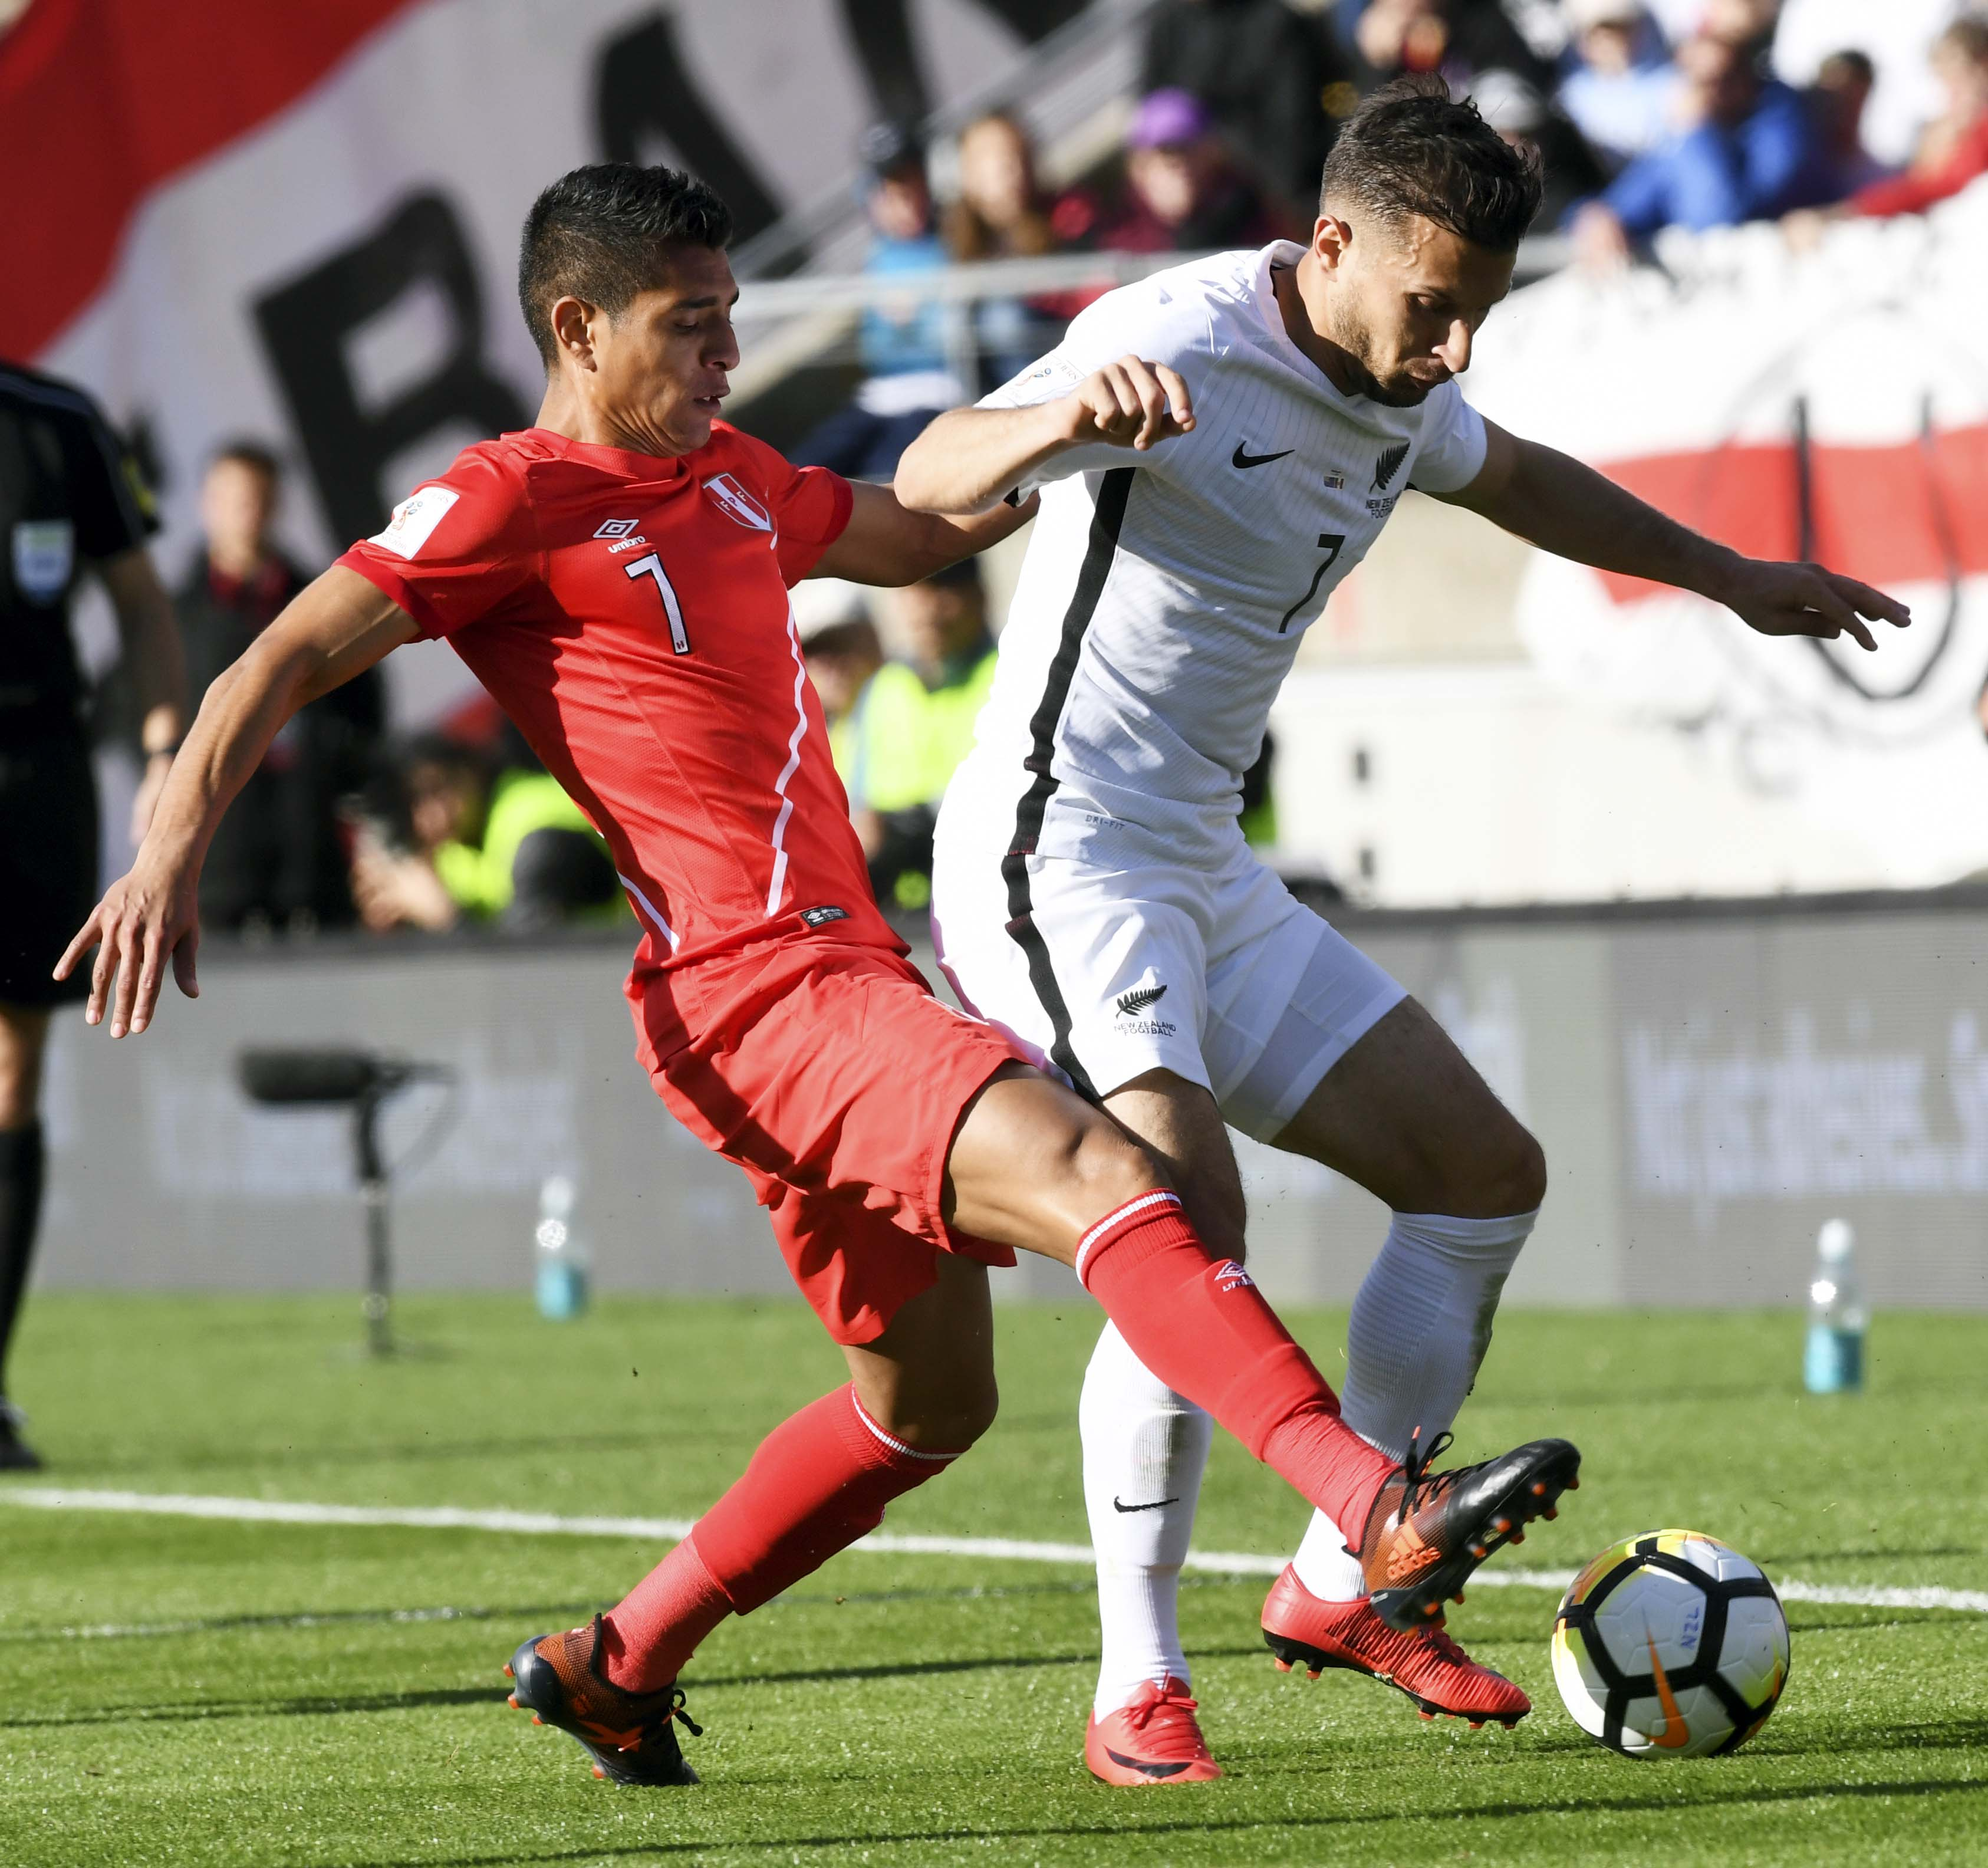 Peru's Paulo Hurtado (left) challenges New Zealand's Kosta Barbarouses for the ball during their World Cup soccer qualifying match in Wellington, New Zealand on Saturday.